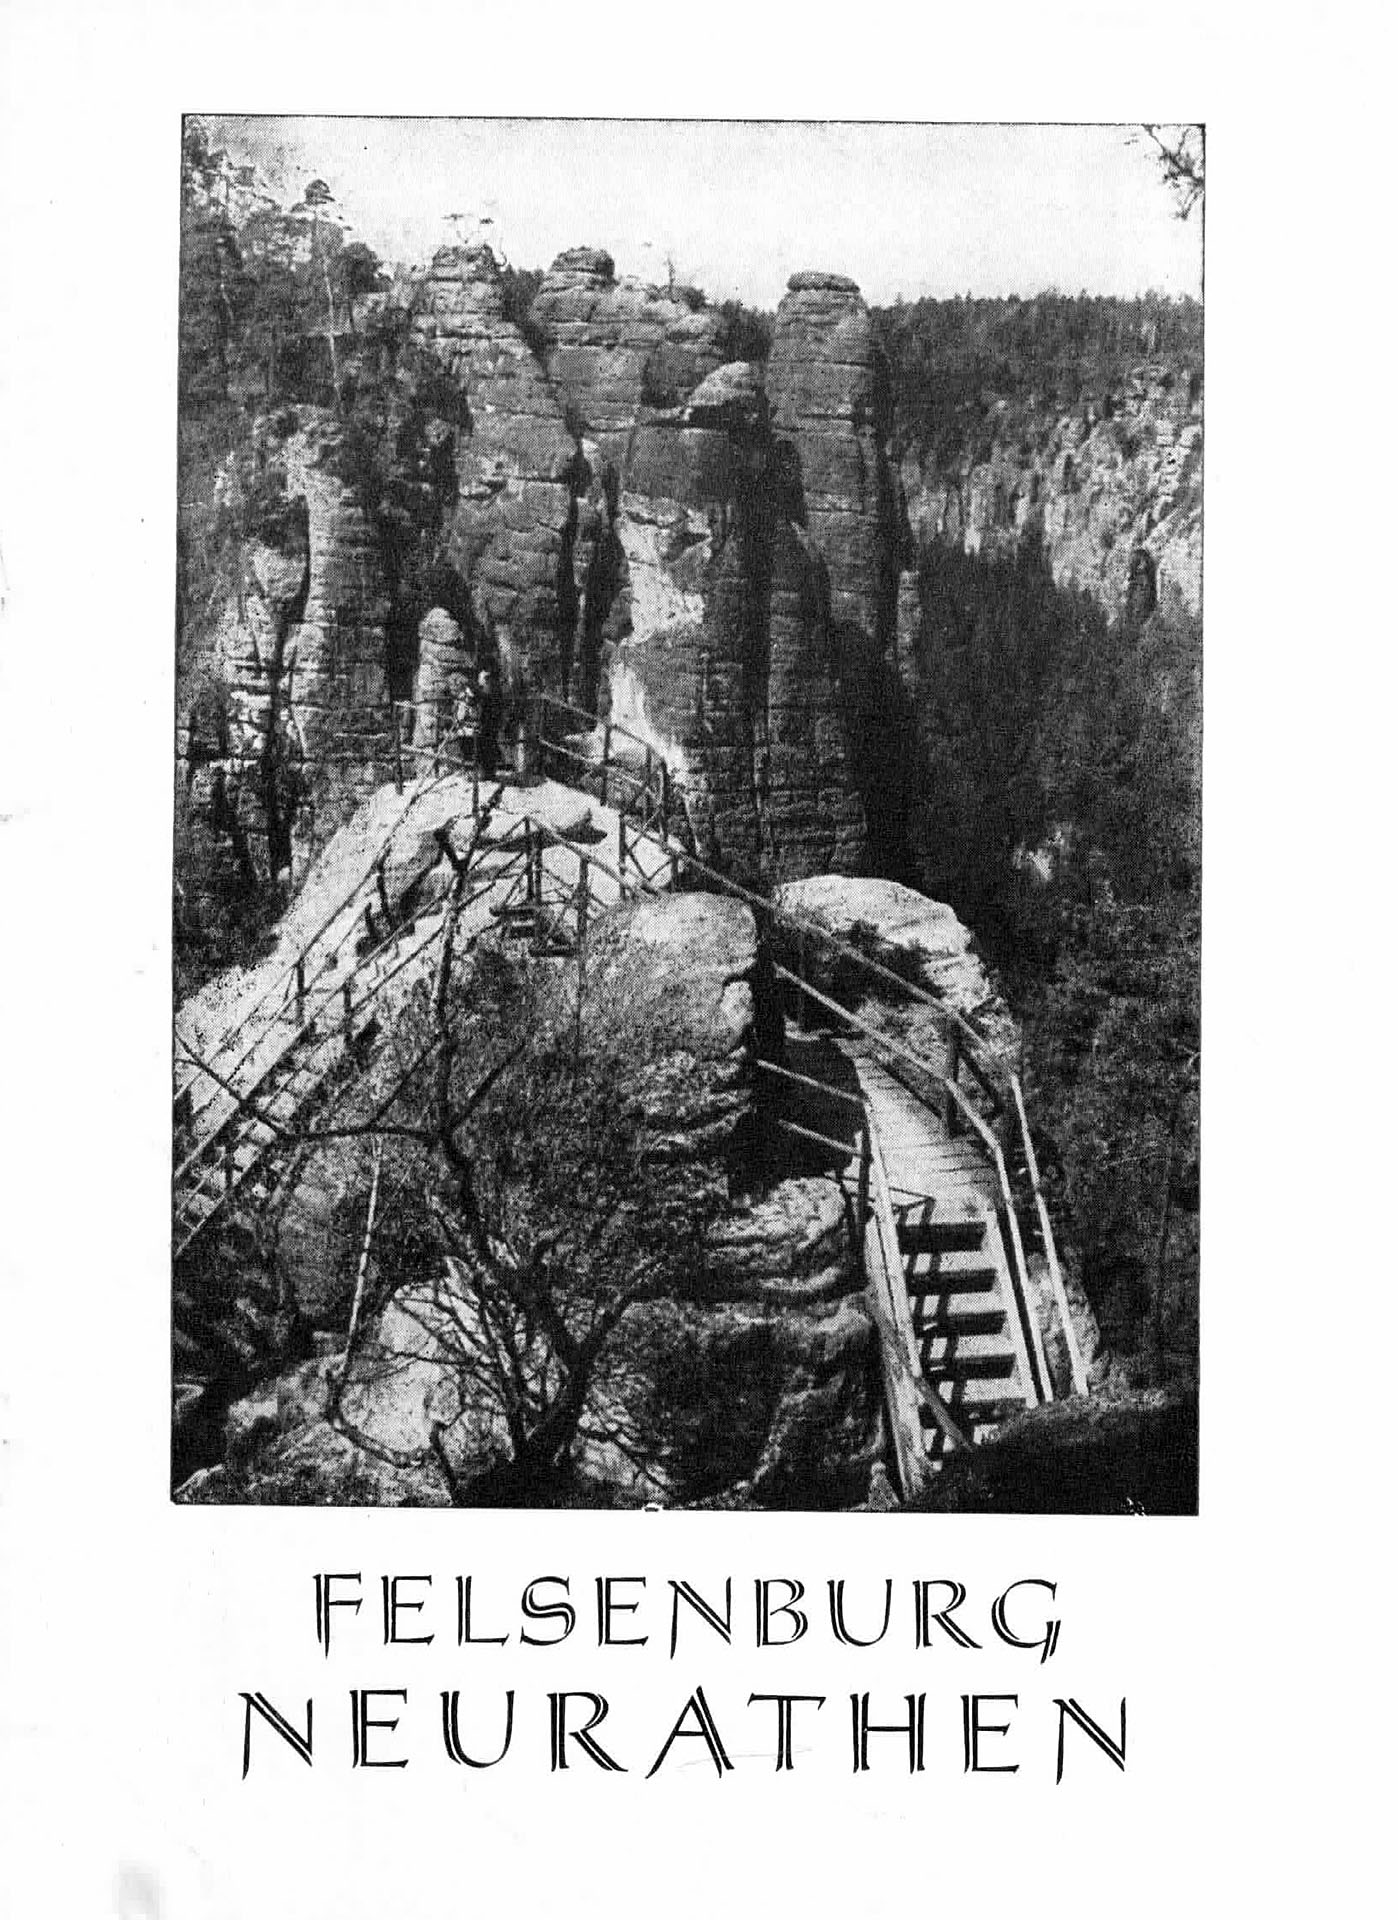 Felsenburg Neurathen